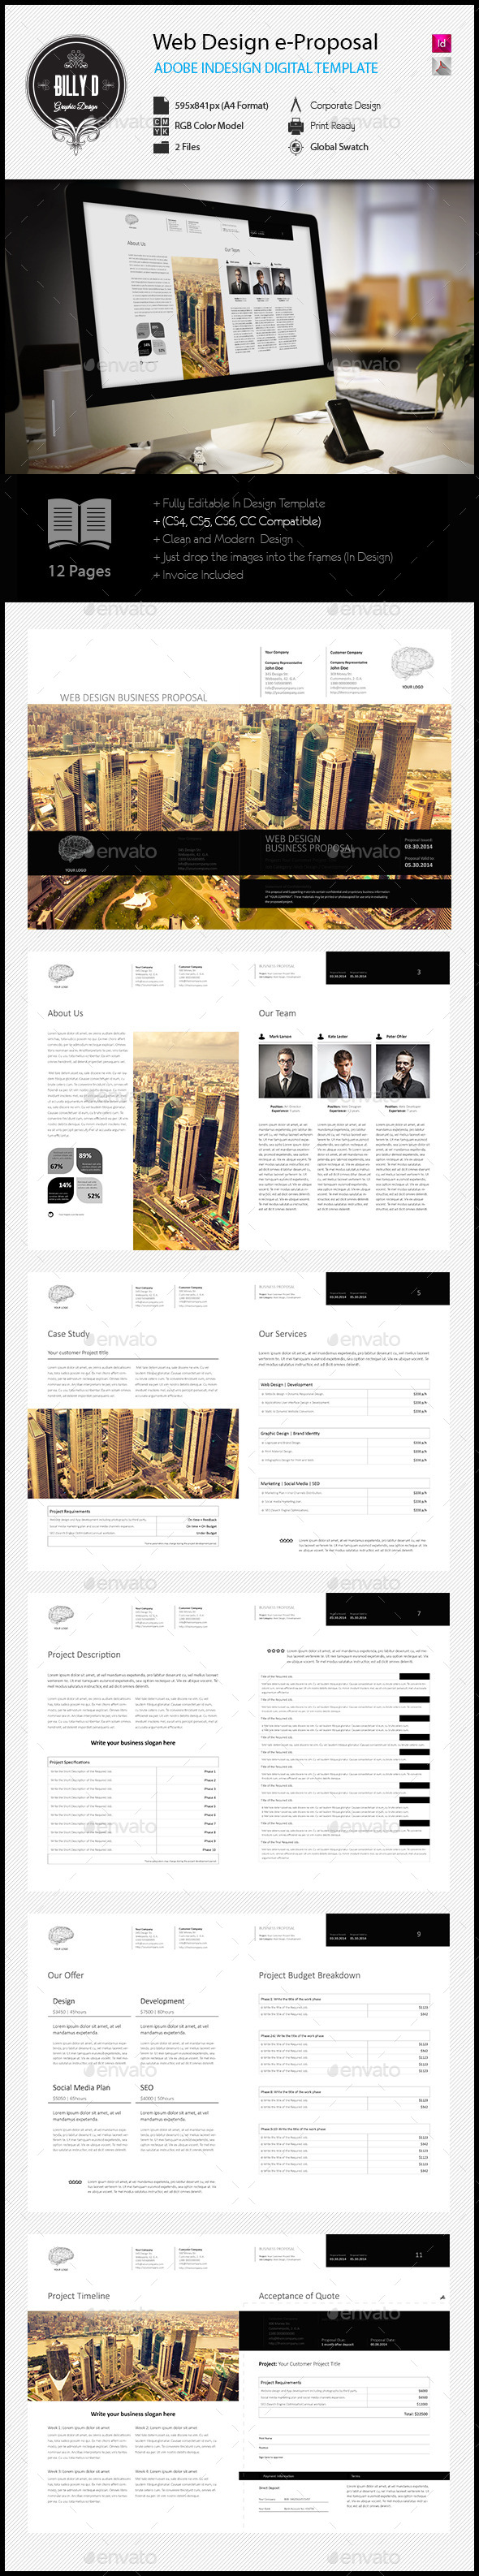 GraphicRiver Web Design e-Proposal Template 11934112